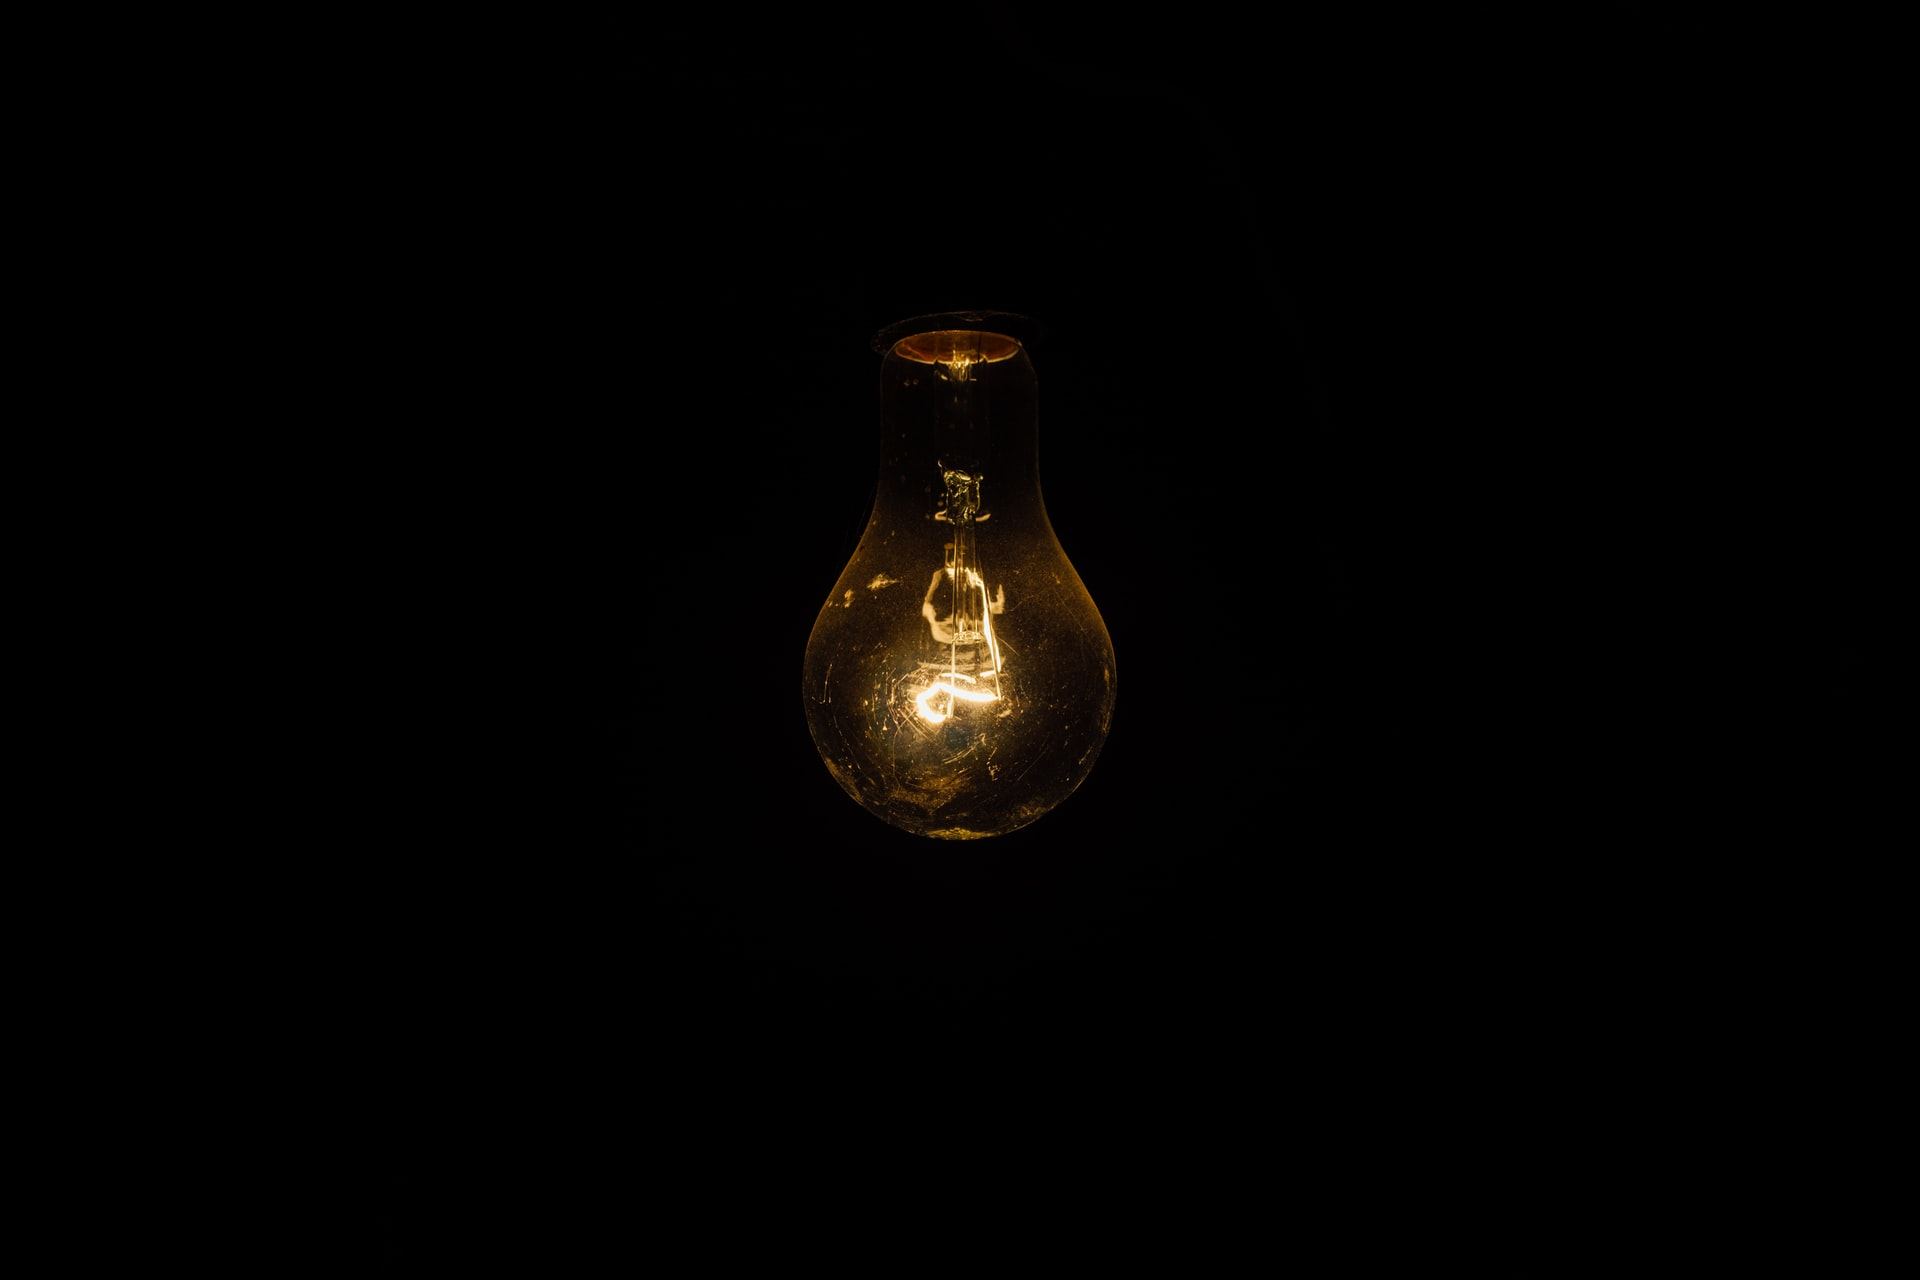 light bulb, gray matter